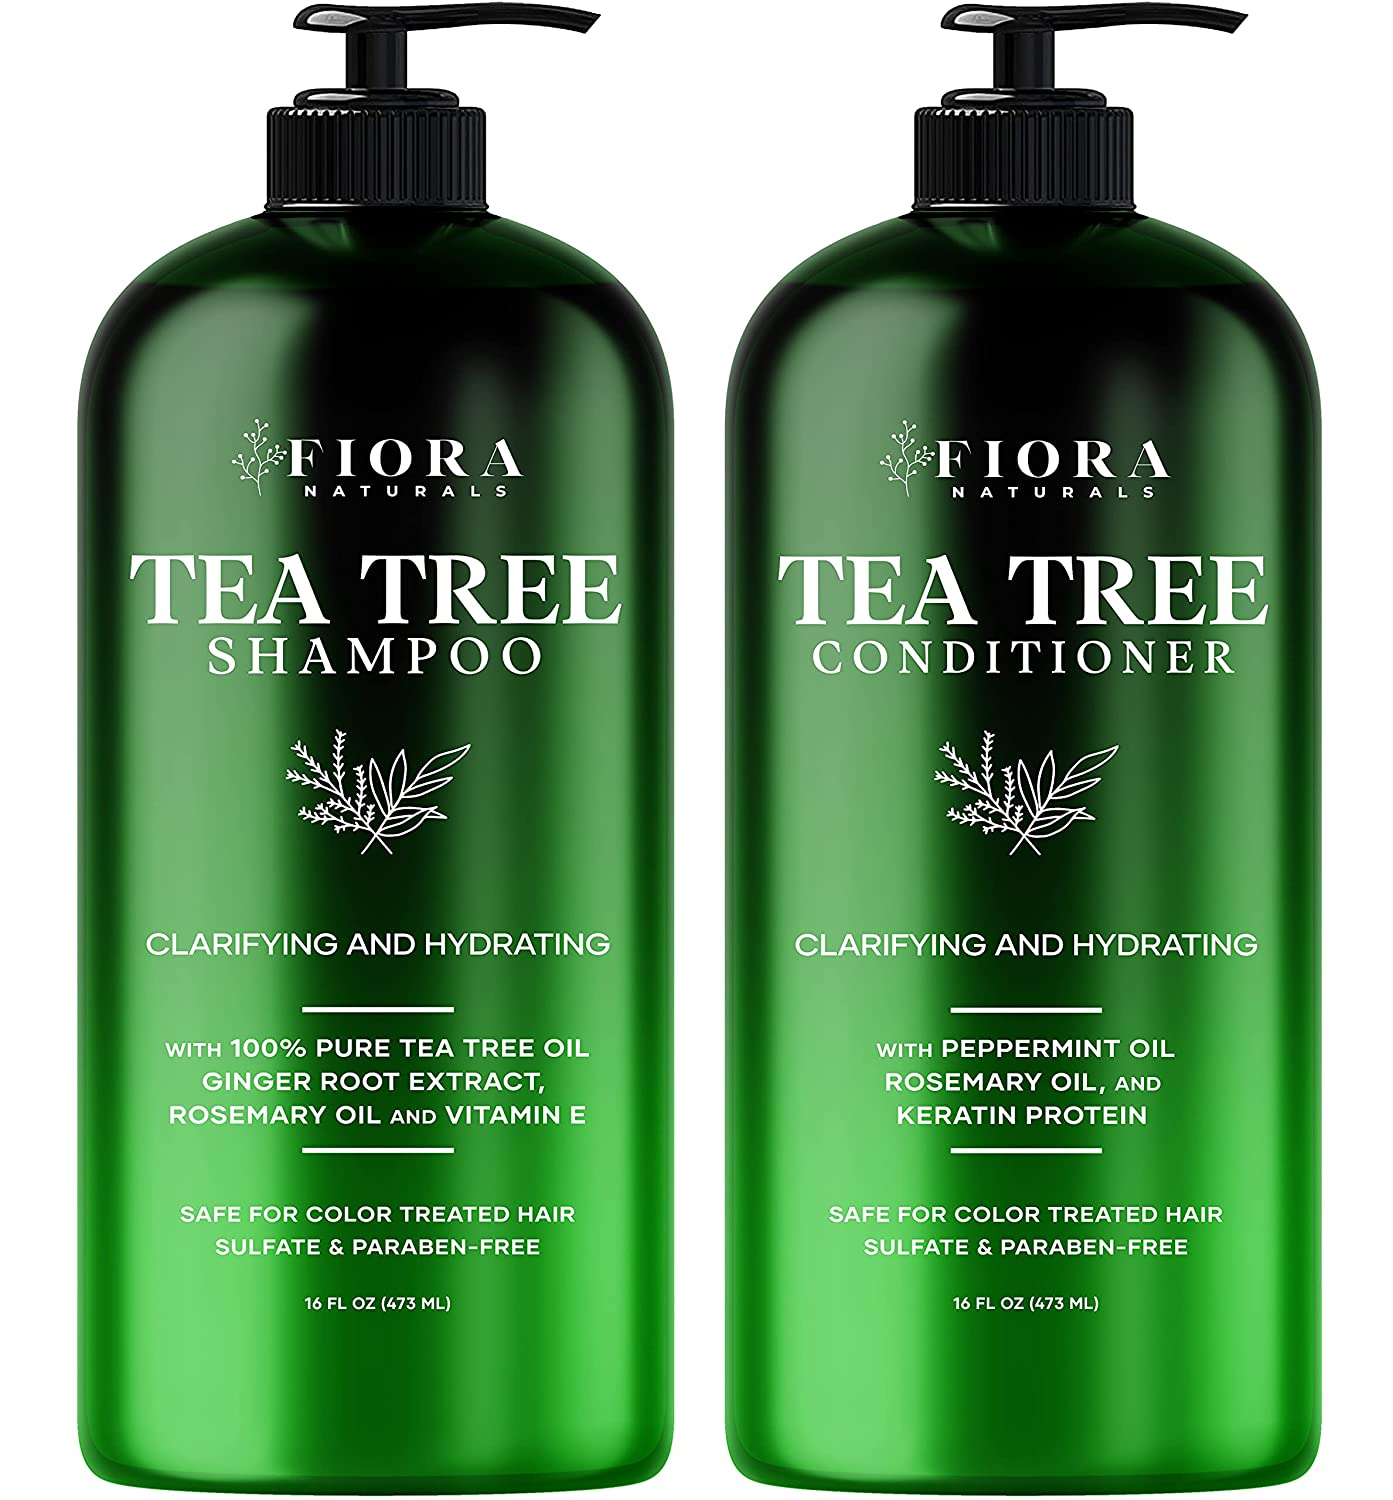 Tea Tree Shampoo and Conditioner Max 54% OFF Set Naturals Sulfate Fiora Sale Special Price - by